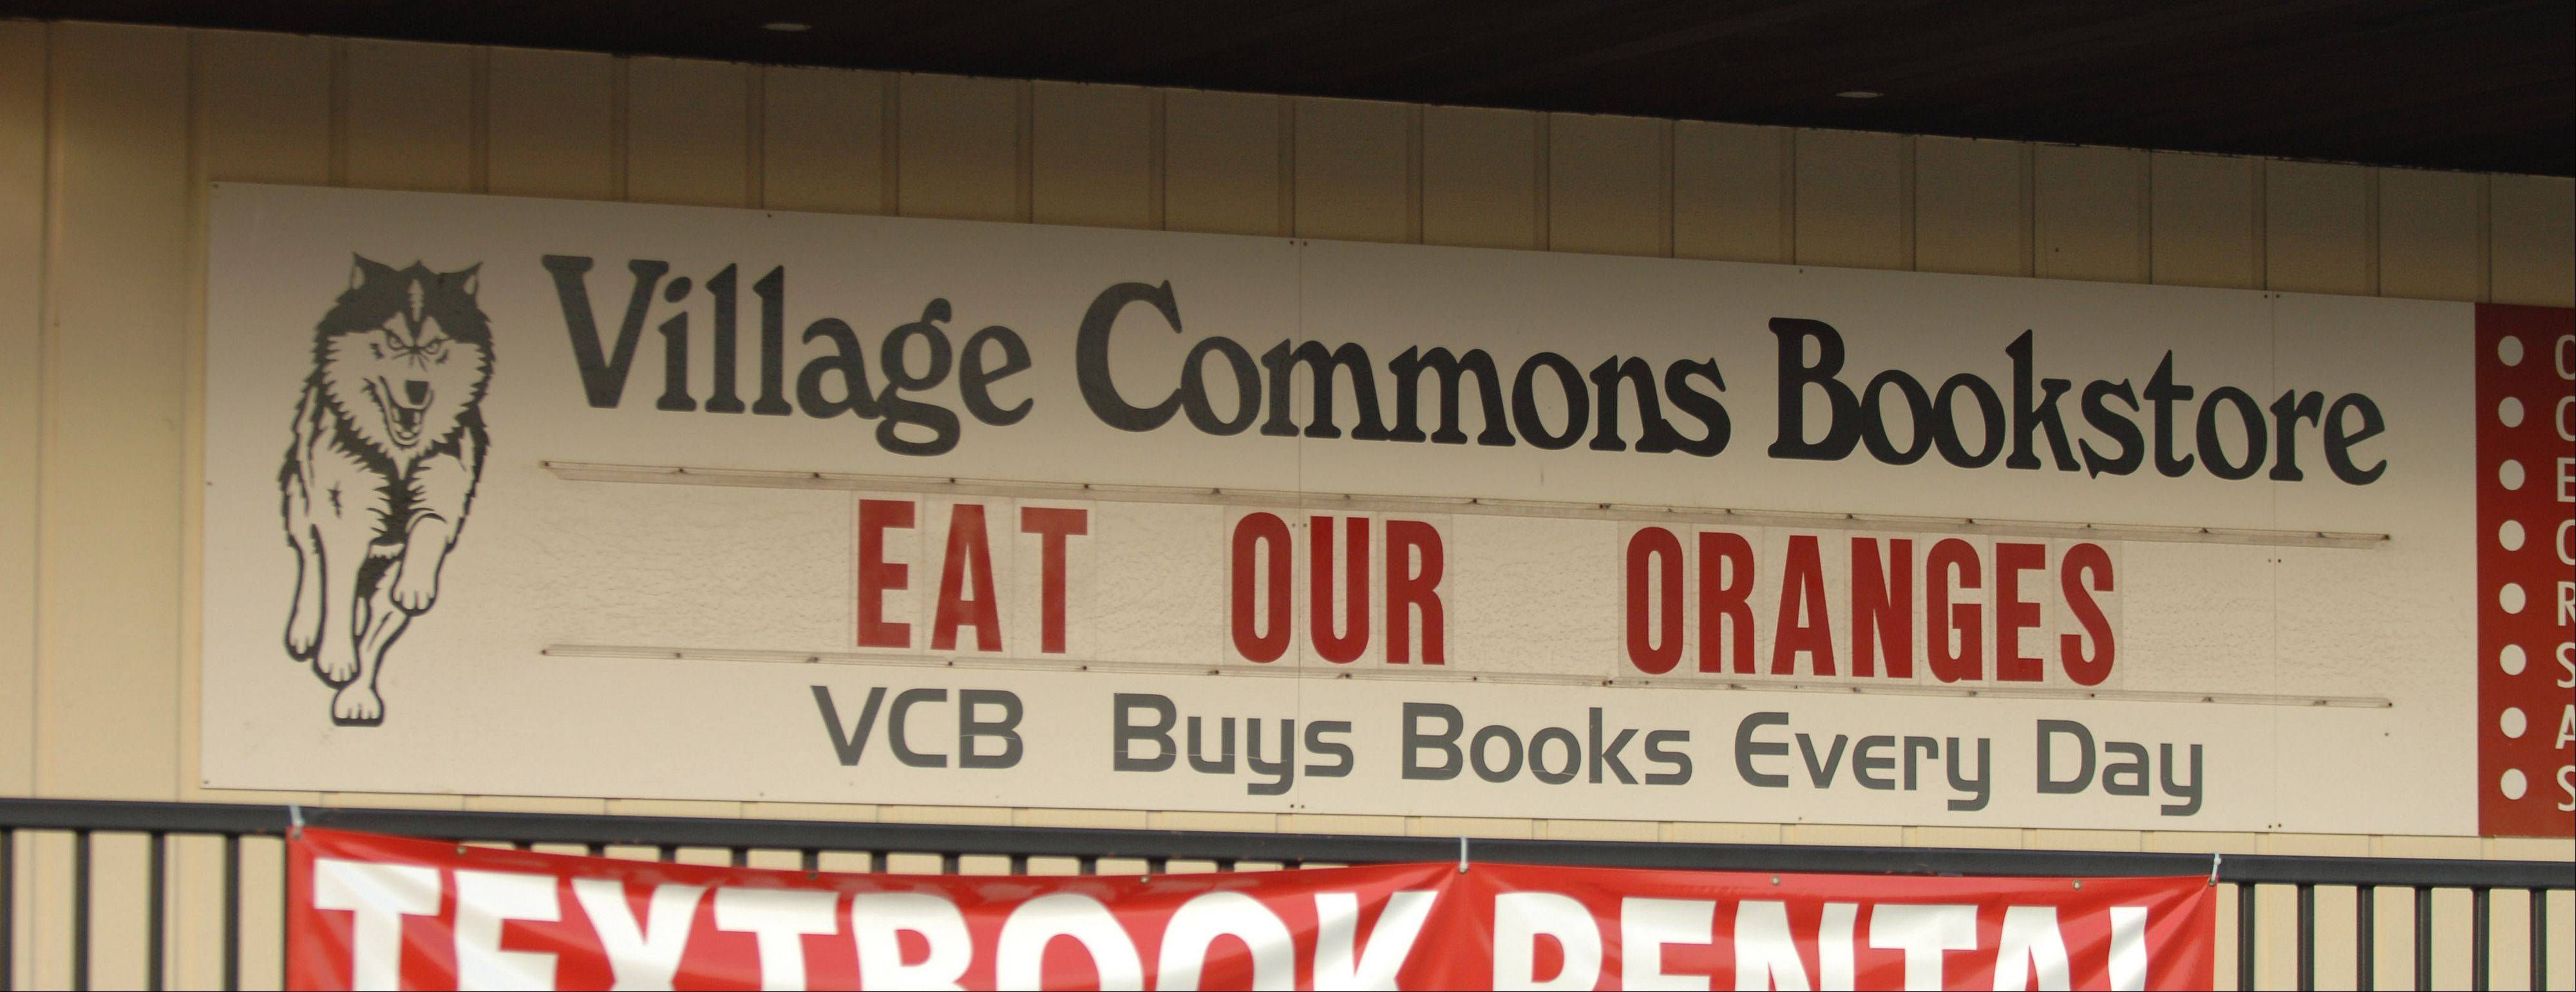 The Village Commons Bookstore sign says it all. NIU will be competing in the Orange Bowl.